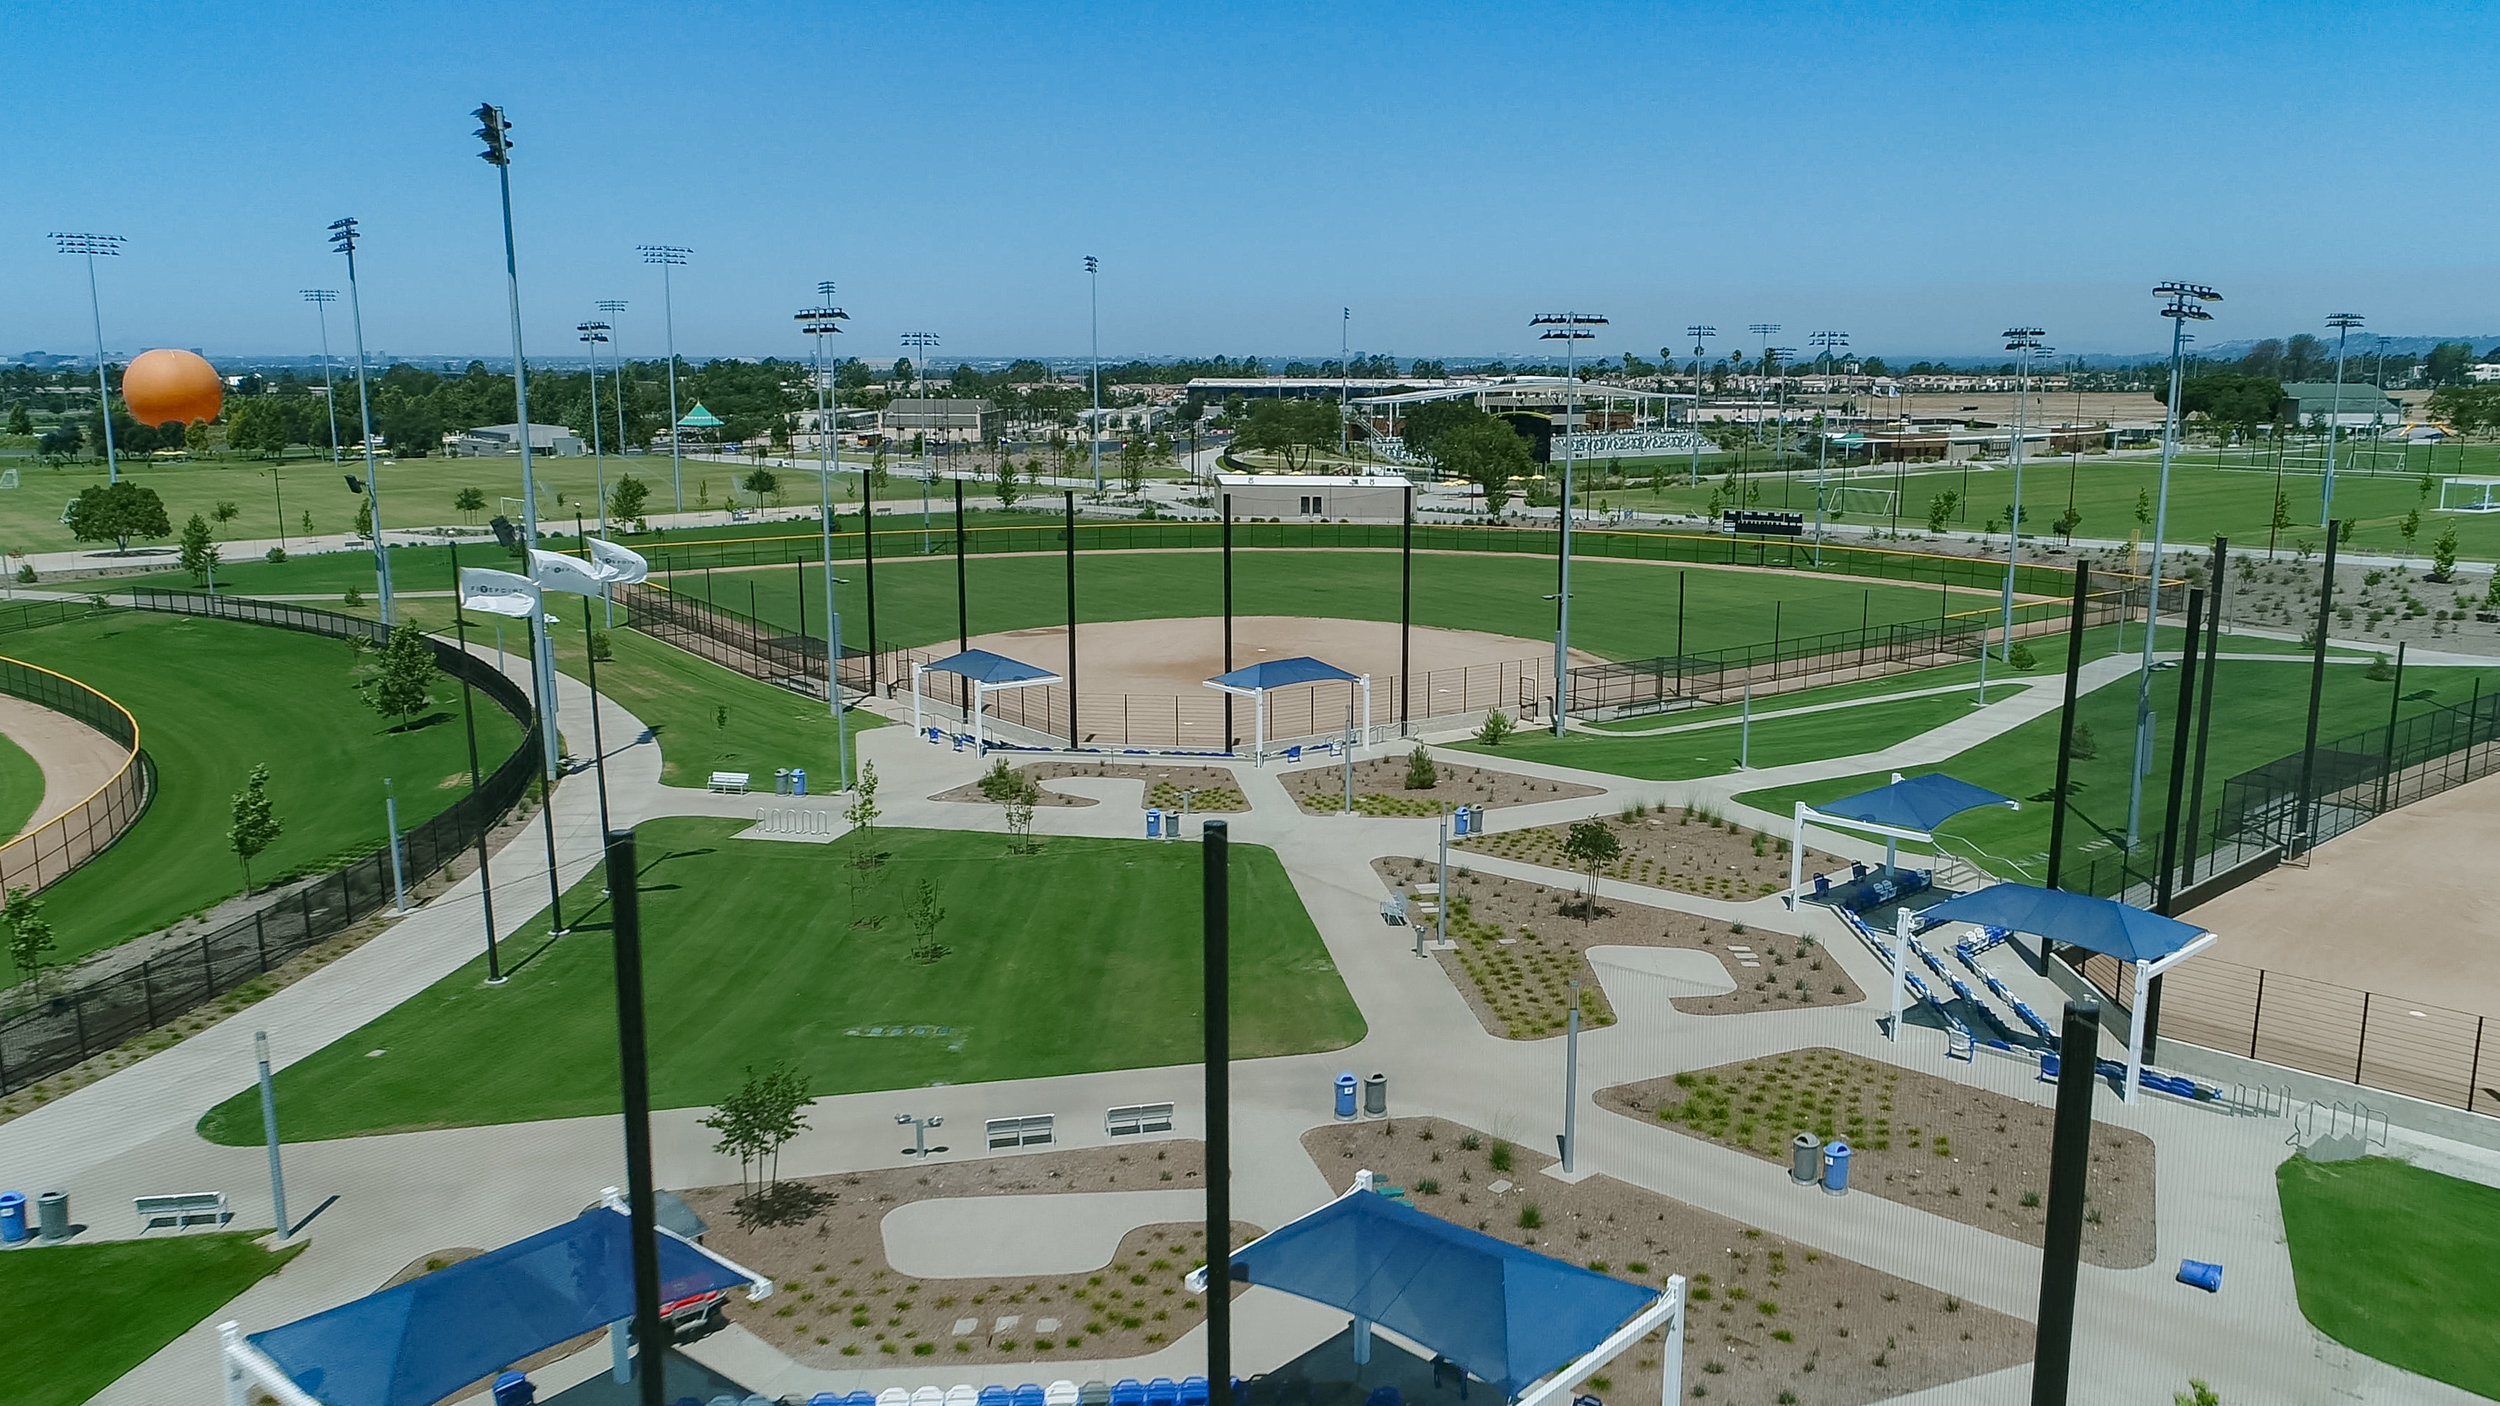 Full OCGP Sports Park Jeffrey L. Bruce 4K_16.jpg